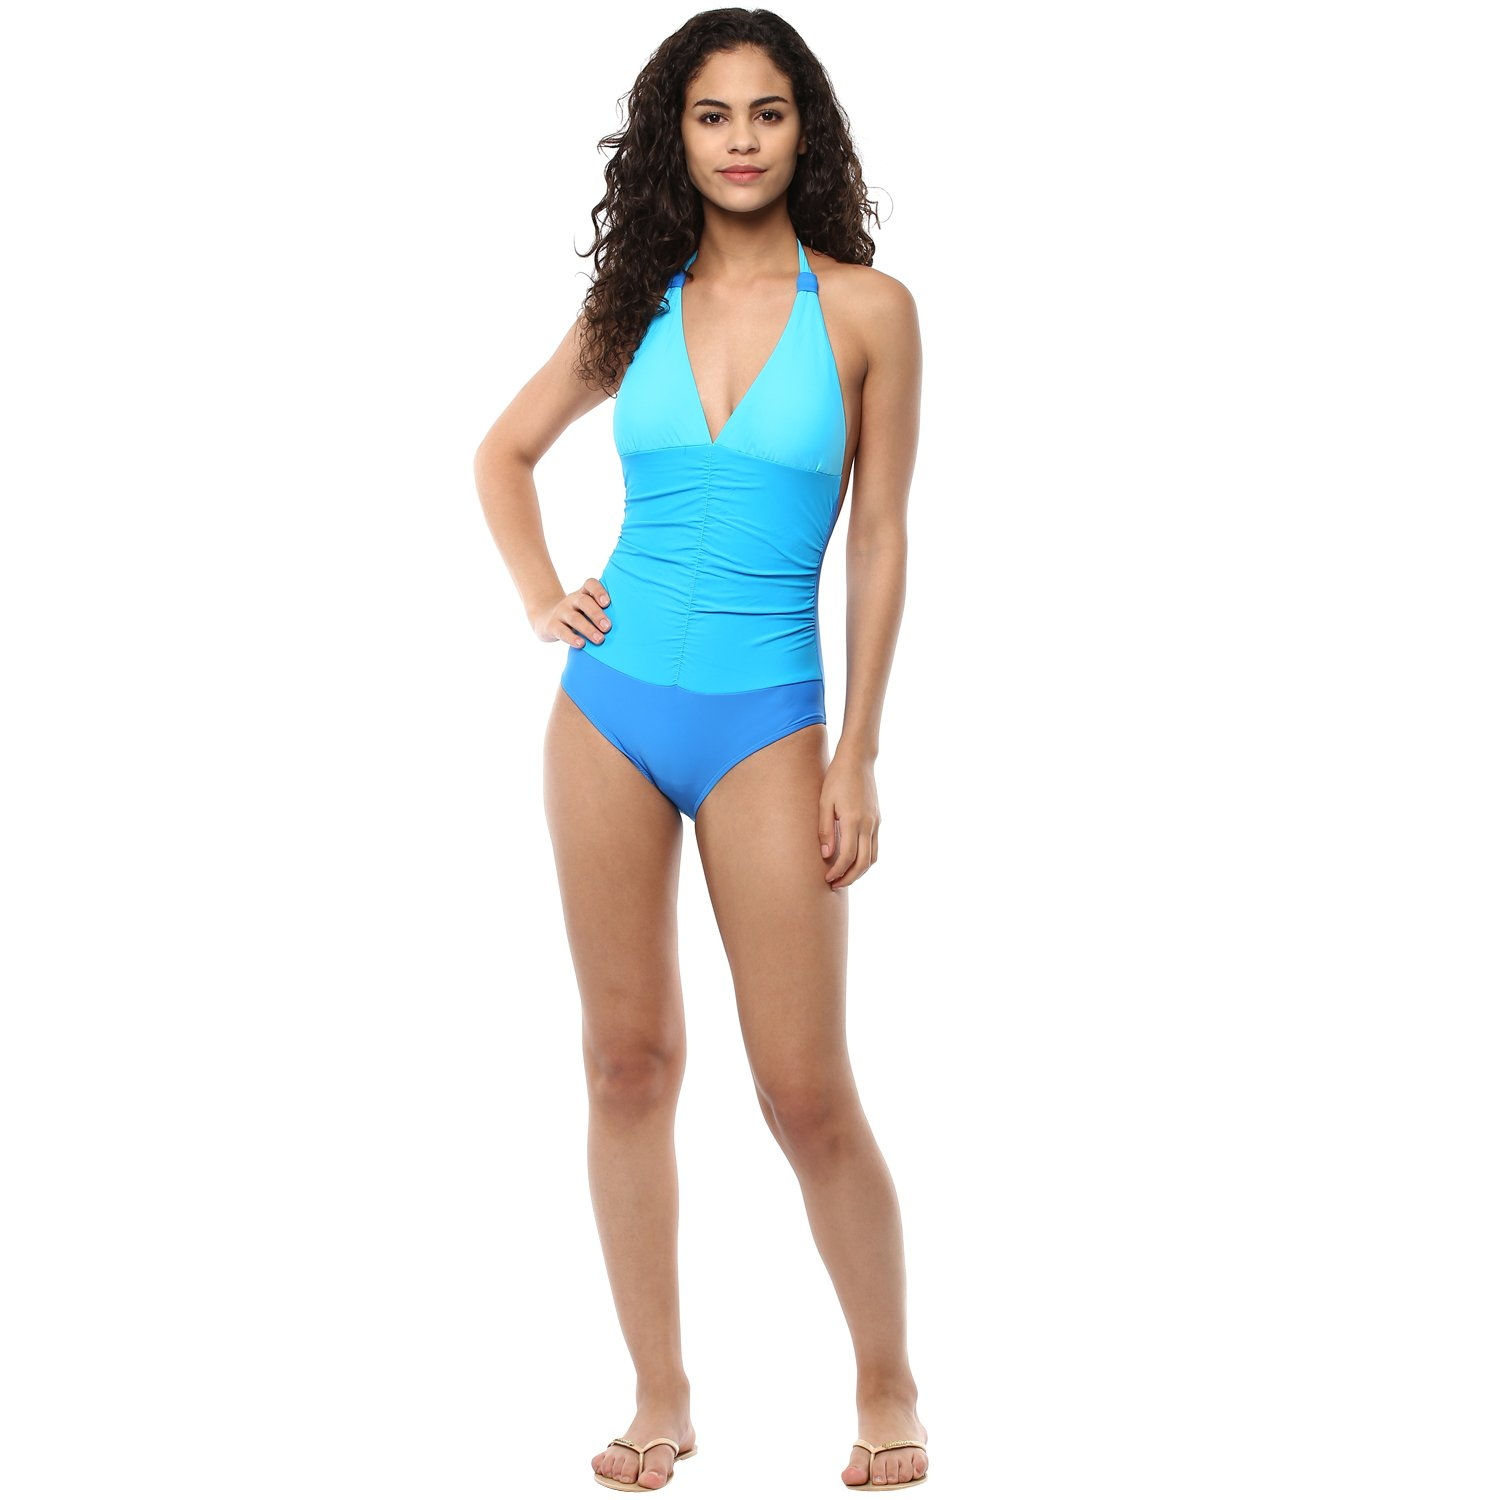 41f99ca3b6140 PrettySecrets Women s One Piece (BSS17SWM18-B Blue M)  Amazon.in  Clothing    Accessories